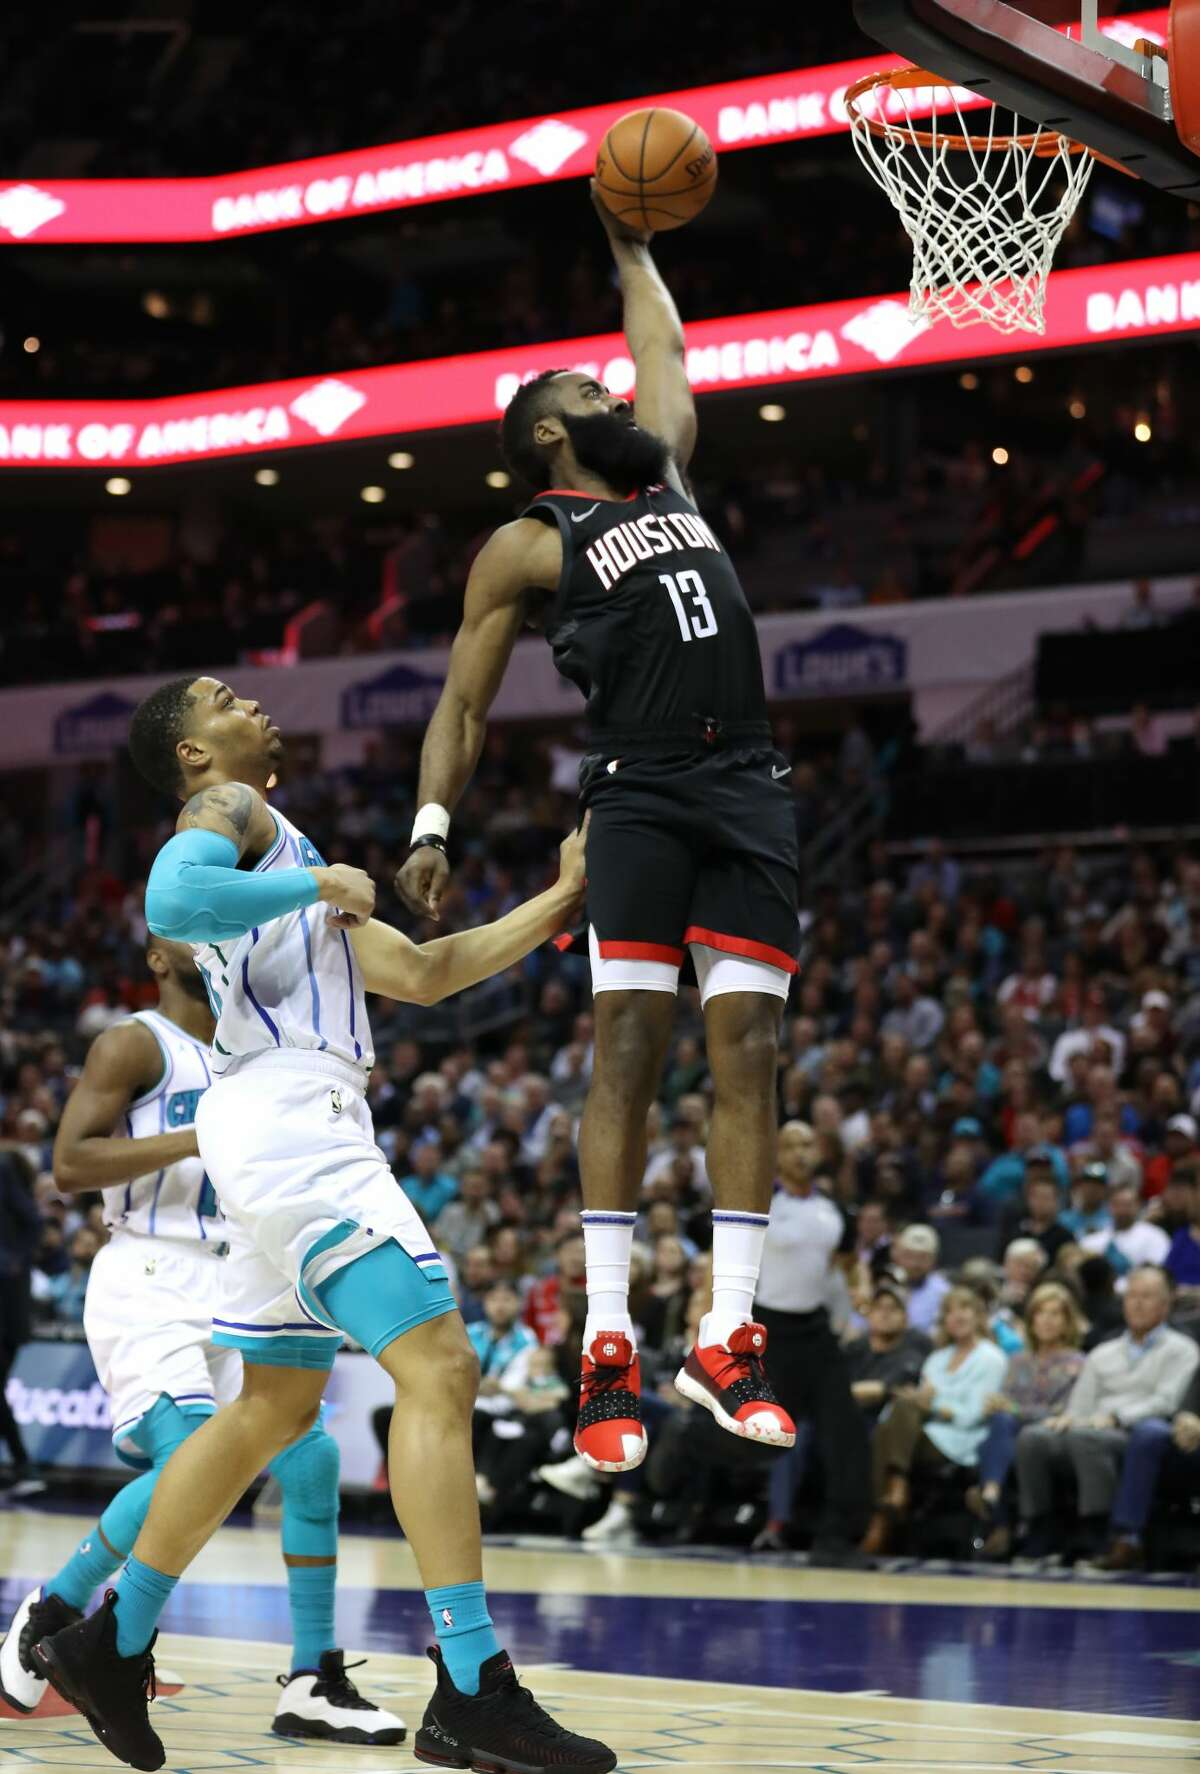 CHARLOTTE, NORTH CAROLINA - FEBRUARY 27: Miles Bridges #0 of the Charlotte Hornets watches as James Harden #13 of the Houston Rockets dunks the ball during their game at Spectrum Center on February 27, 2019 in Charlotte, North Carolina. NOTE TO USER: User expressly acknowledges and agrees that, by downloading and or using this photograph, User is consenting to the terms and conditions of the Getty Images License Agreement. (Photo by Streeter Lecka/Getty Images)